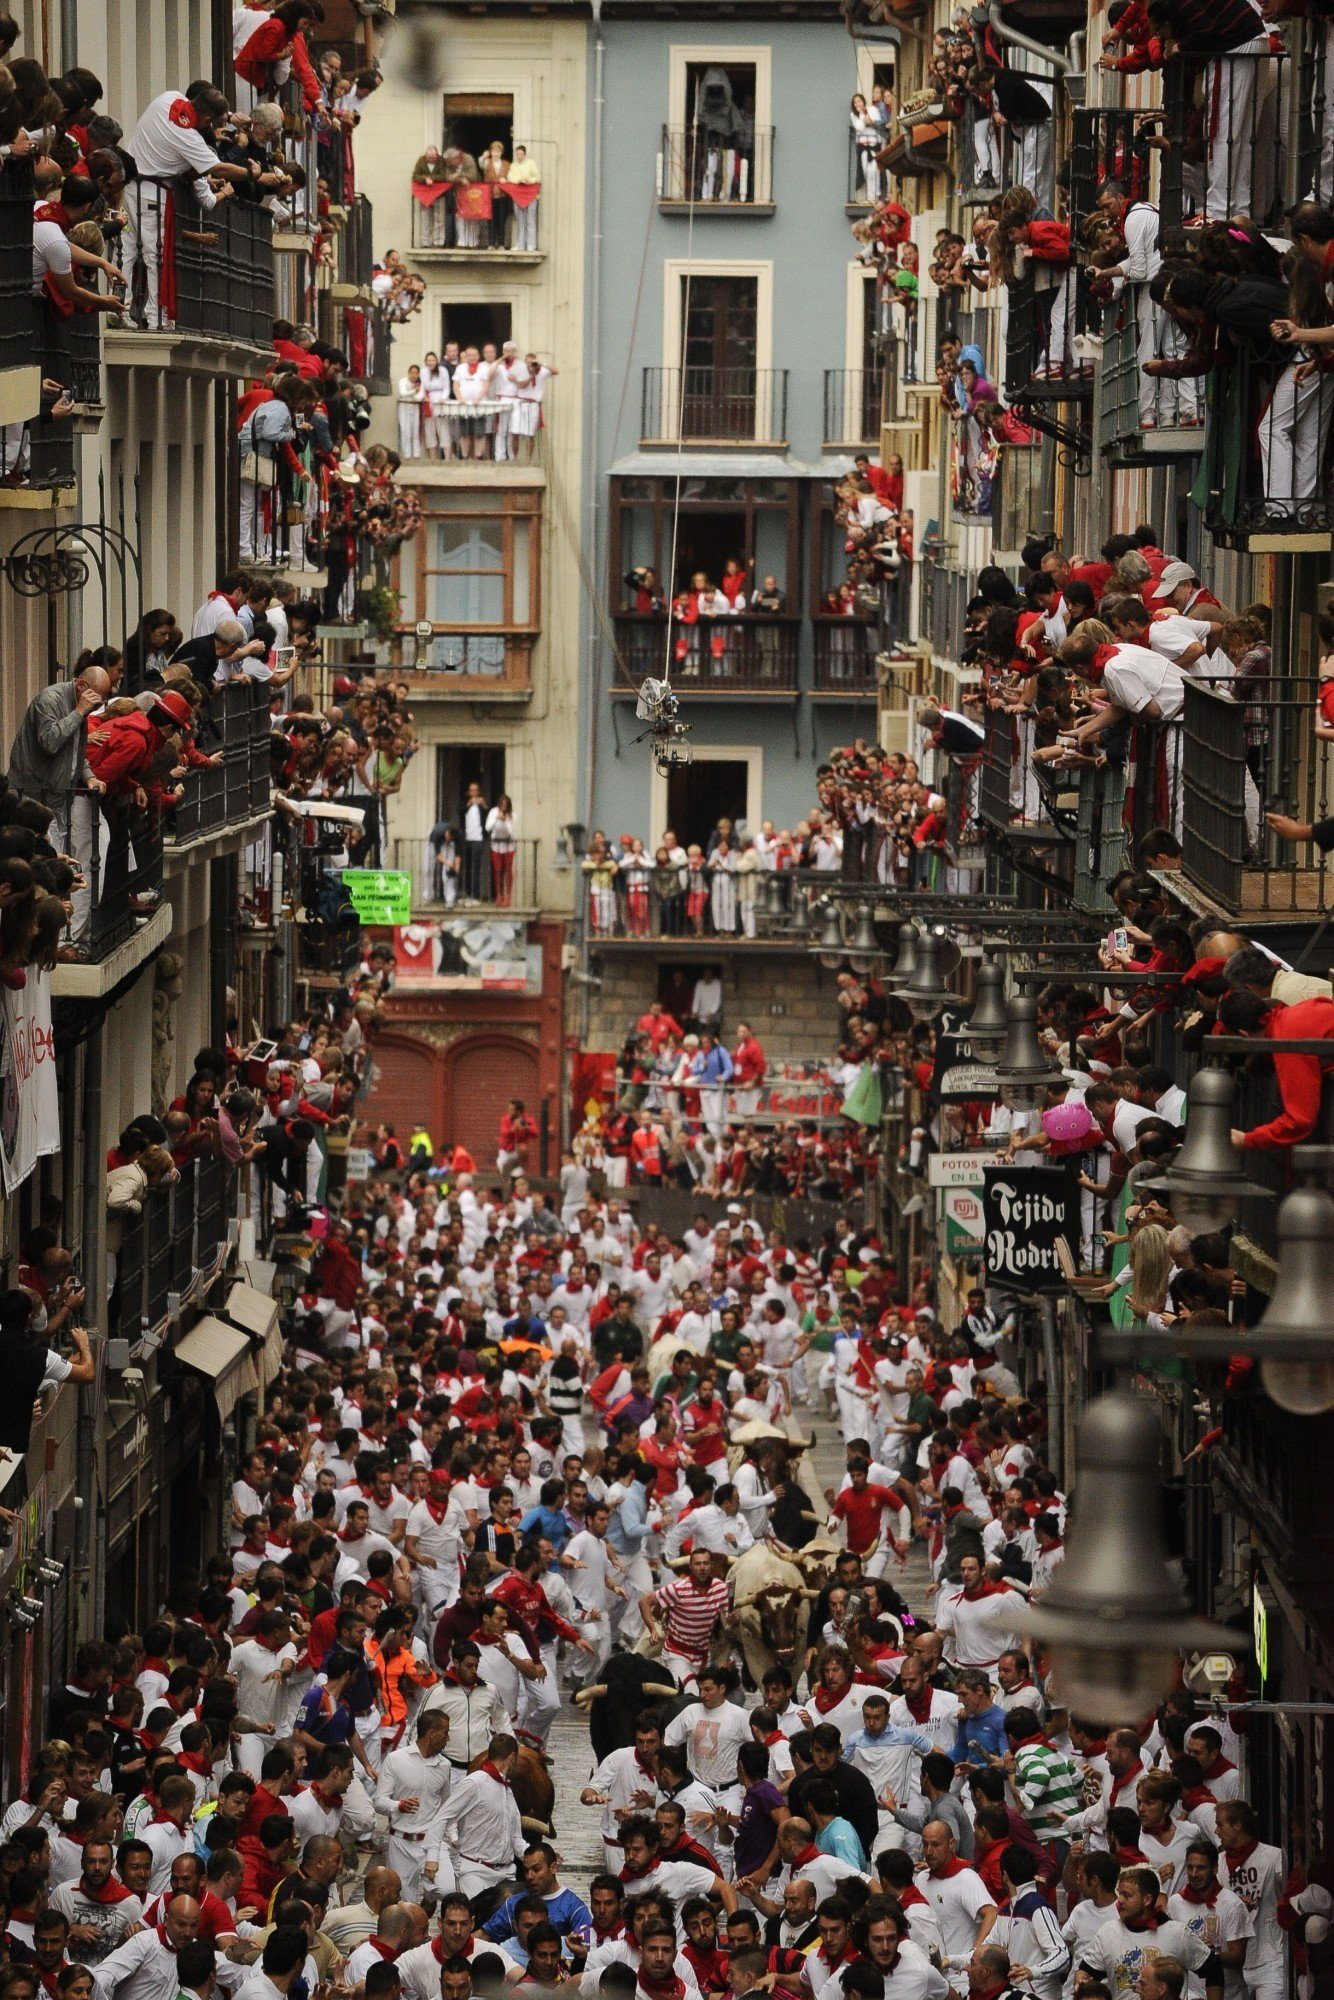 People standing on balconies look at participants as they run in front of Victoriano del Rio Cortes' bulls during the third bull-run of the San Fermin Festival in Pamplona, northern Spain, on July 9, 2014. The festival is a symbol of Spanish culture that attracts thousands of tourists to watch the bull runs despite heavy condemnation from animal rights groups.  AFP PHOTO / PEDRO ARMESTRE        (Photo credit should read PEDRO ARMESTRE/AFP/Getty Images)